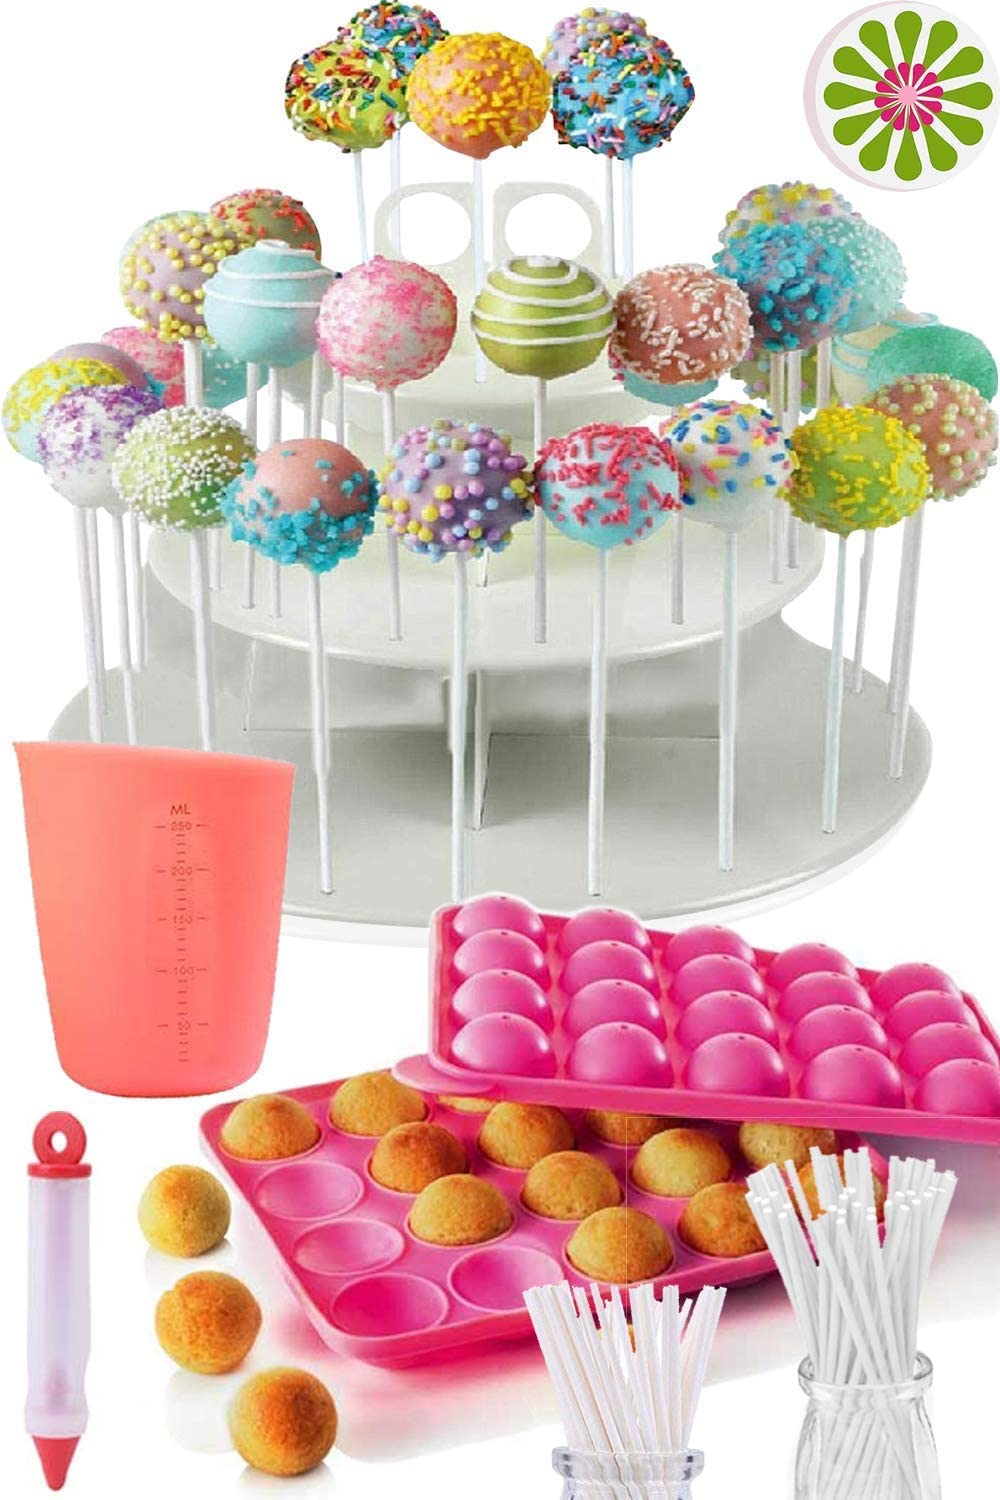 Clear Plastic Self-Stand Packing Bags Cookie Lollipop Candy Kids Party Gift Box